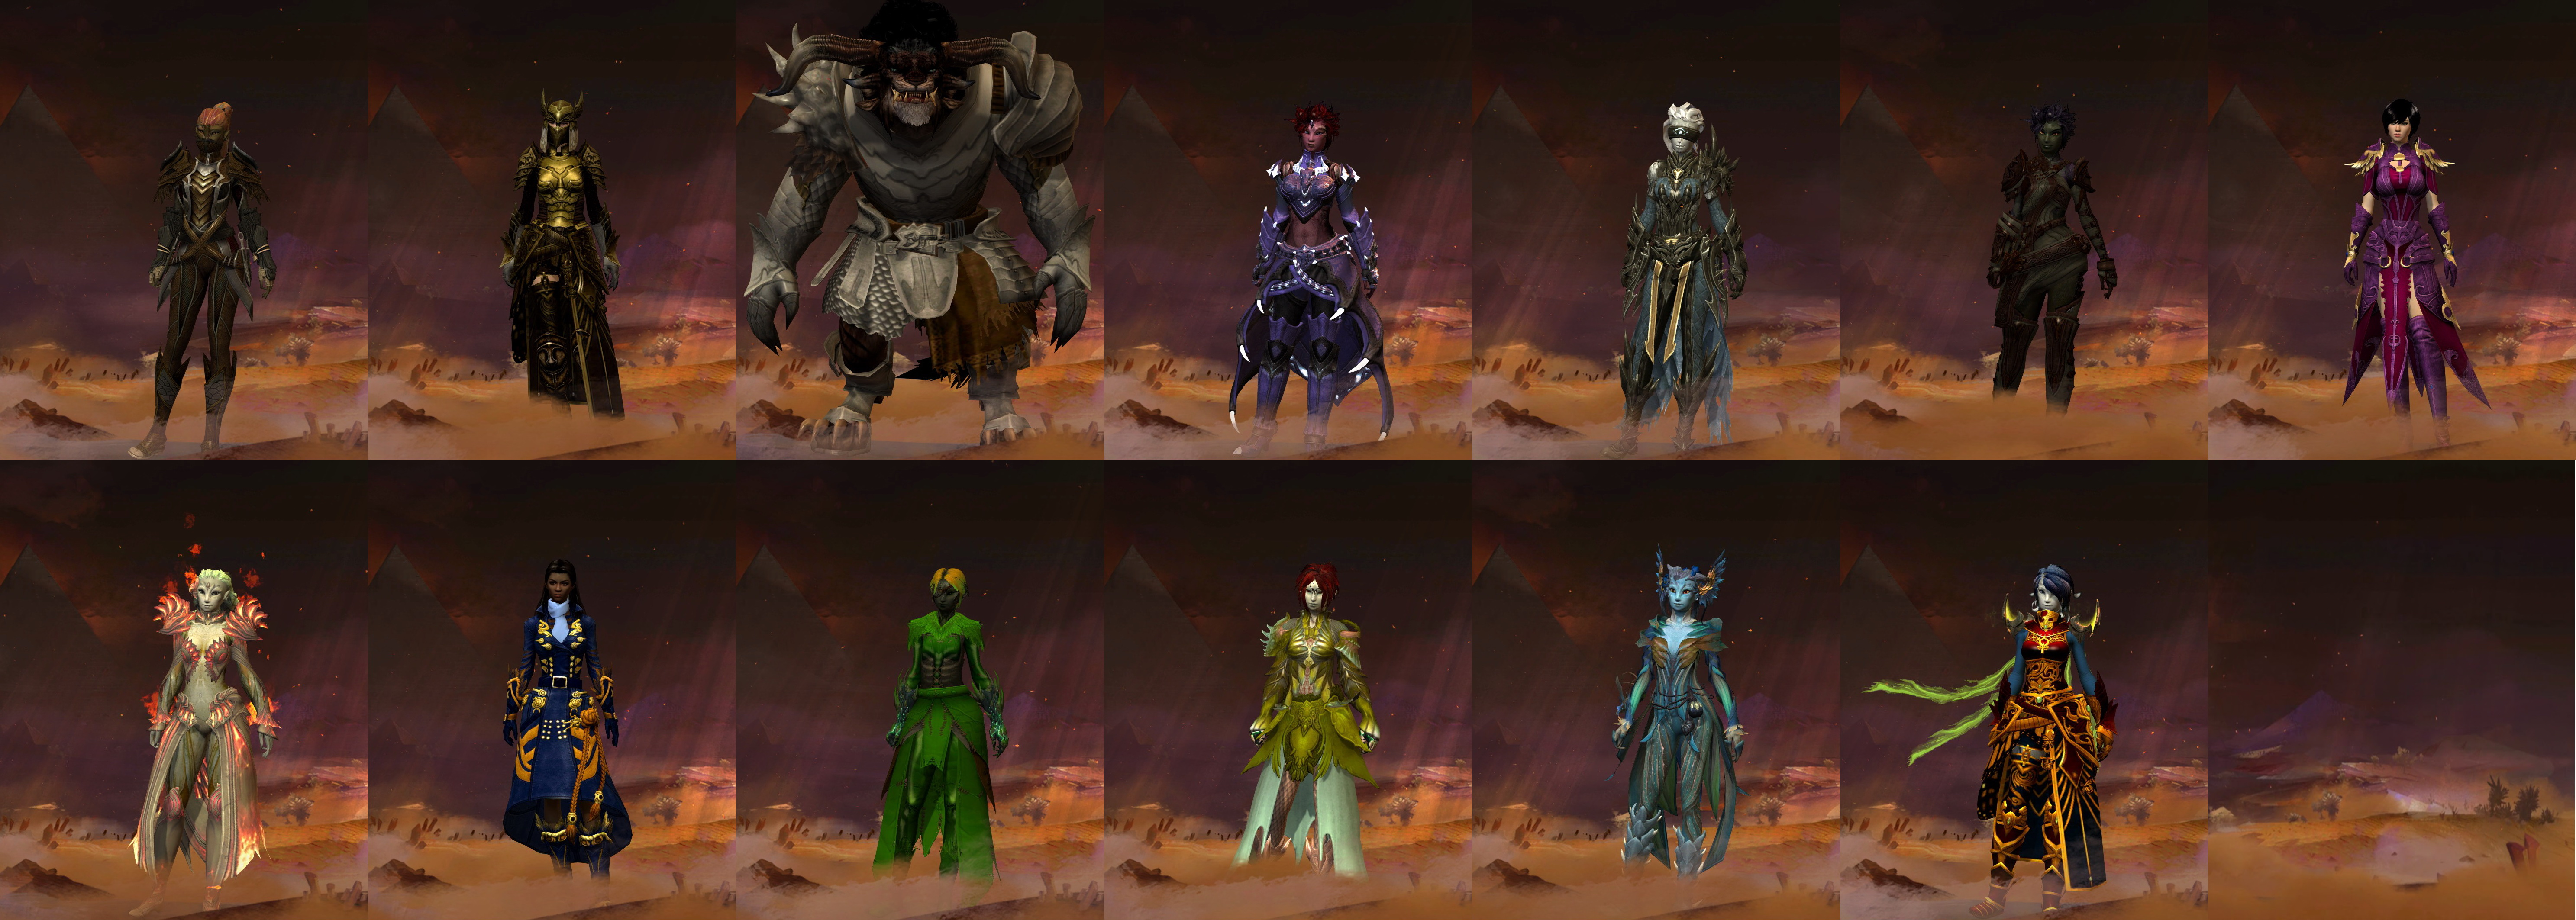 character_overview-20190314.jpg